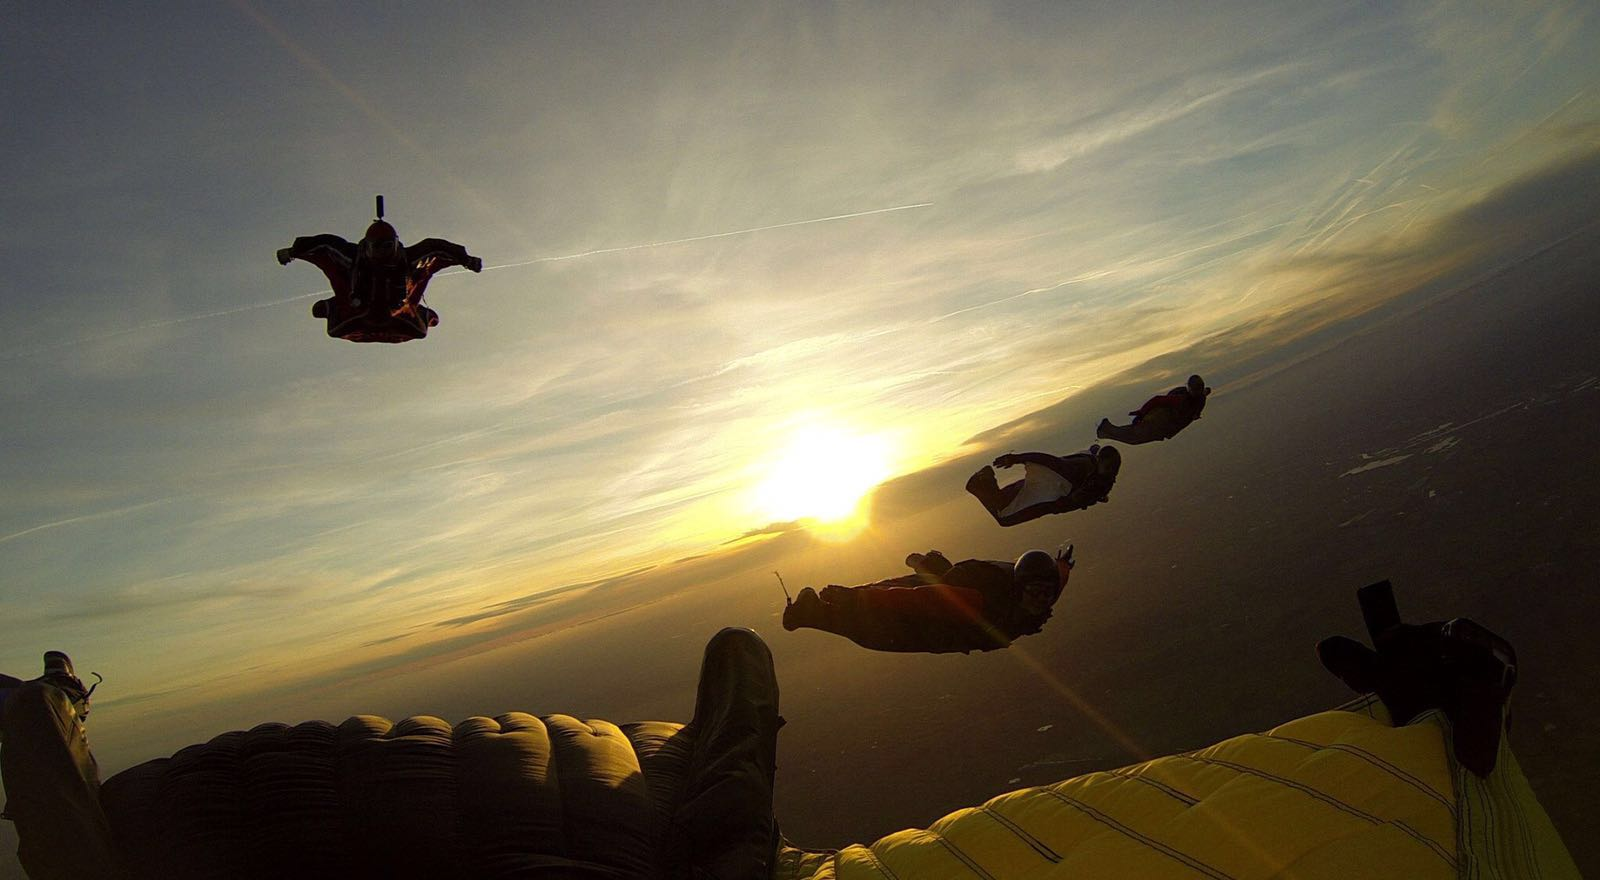 11 Things You Need to Know Before You Go Skydiving